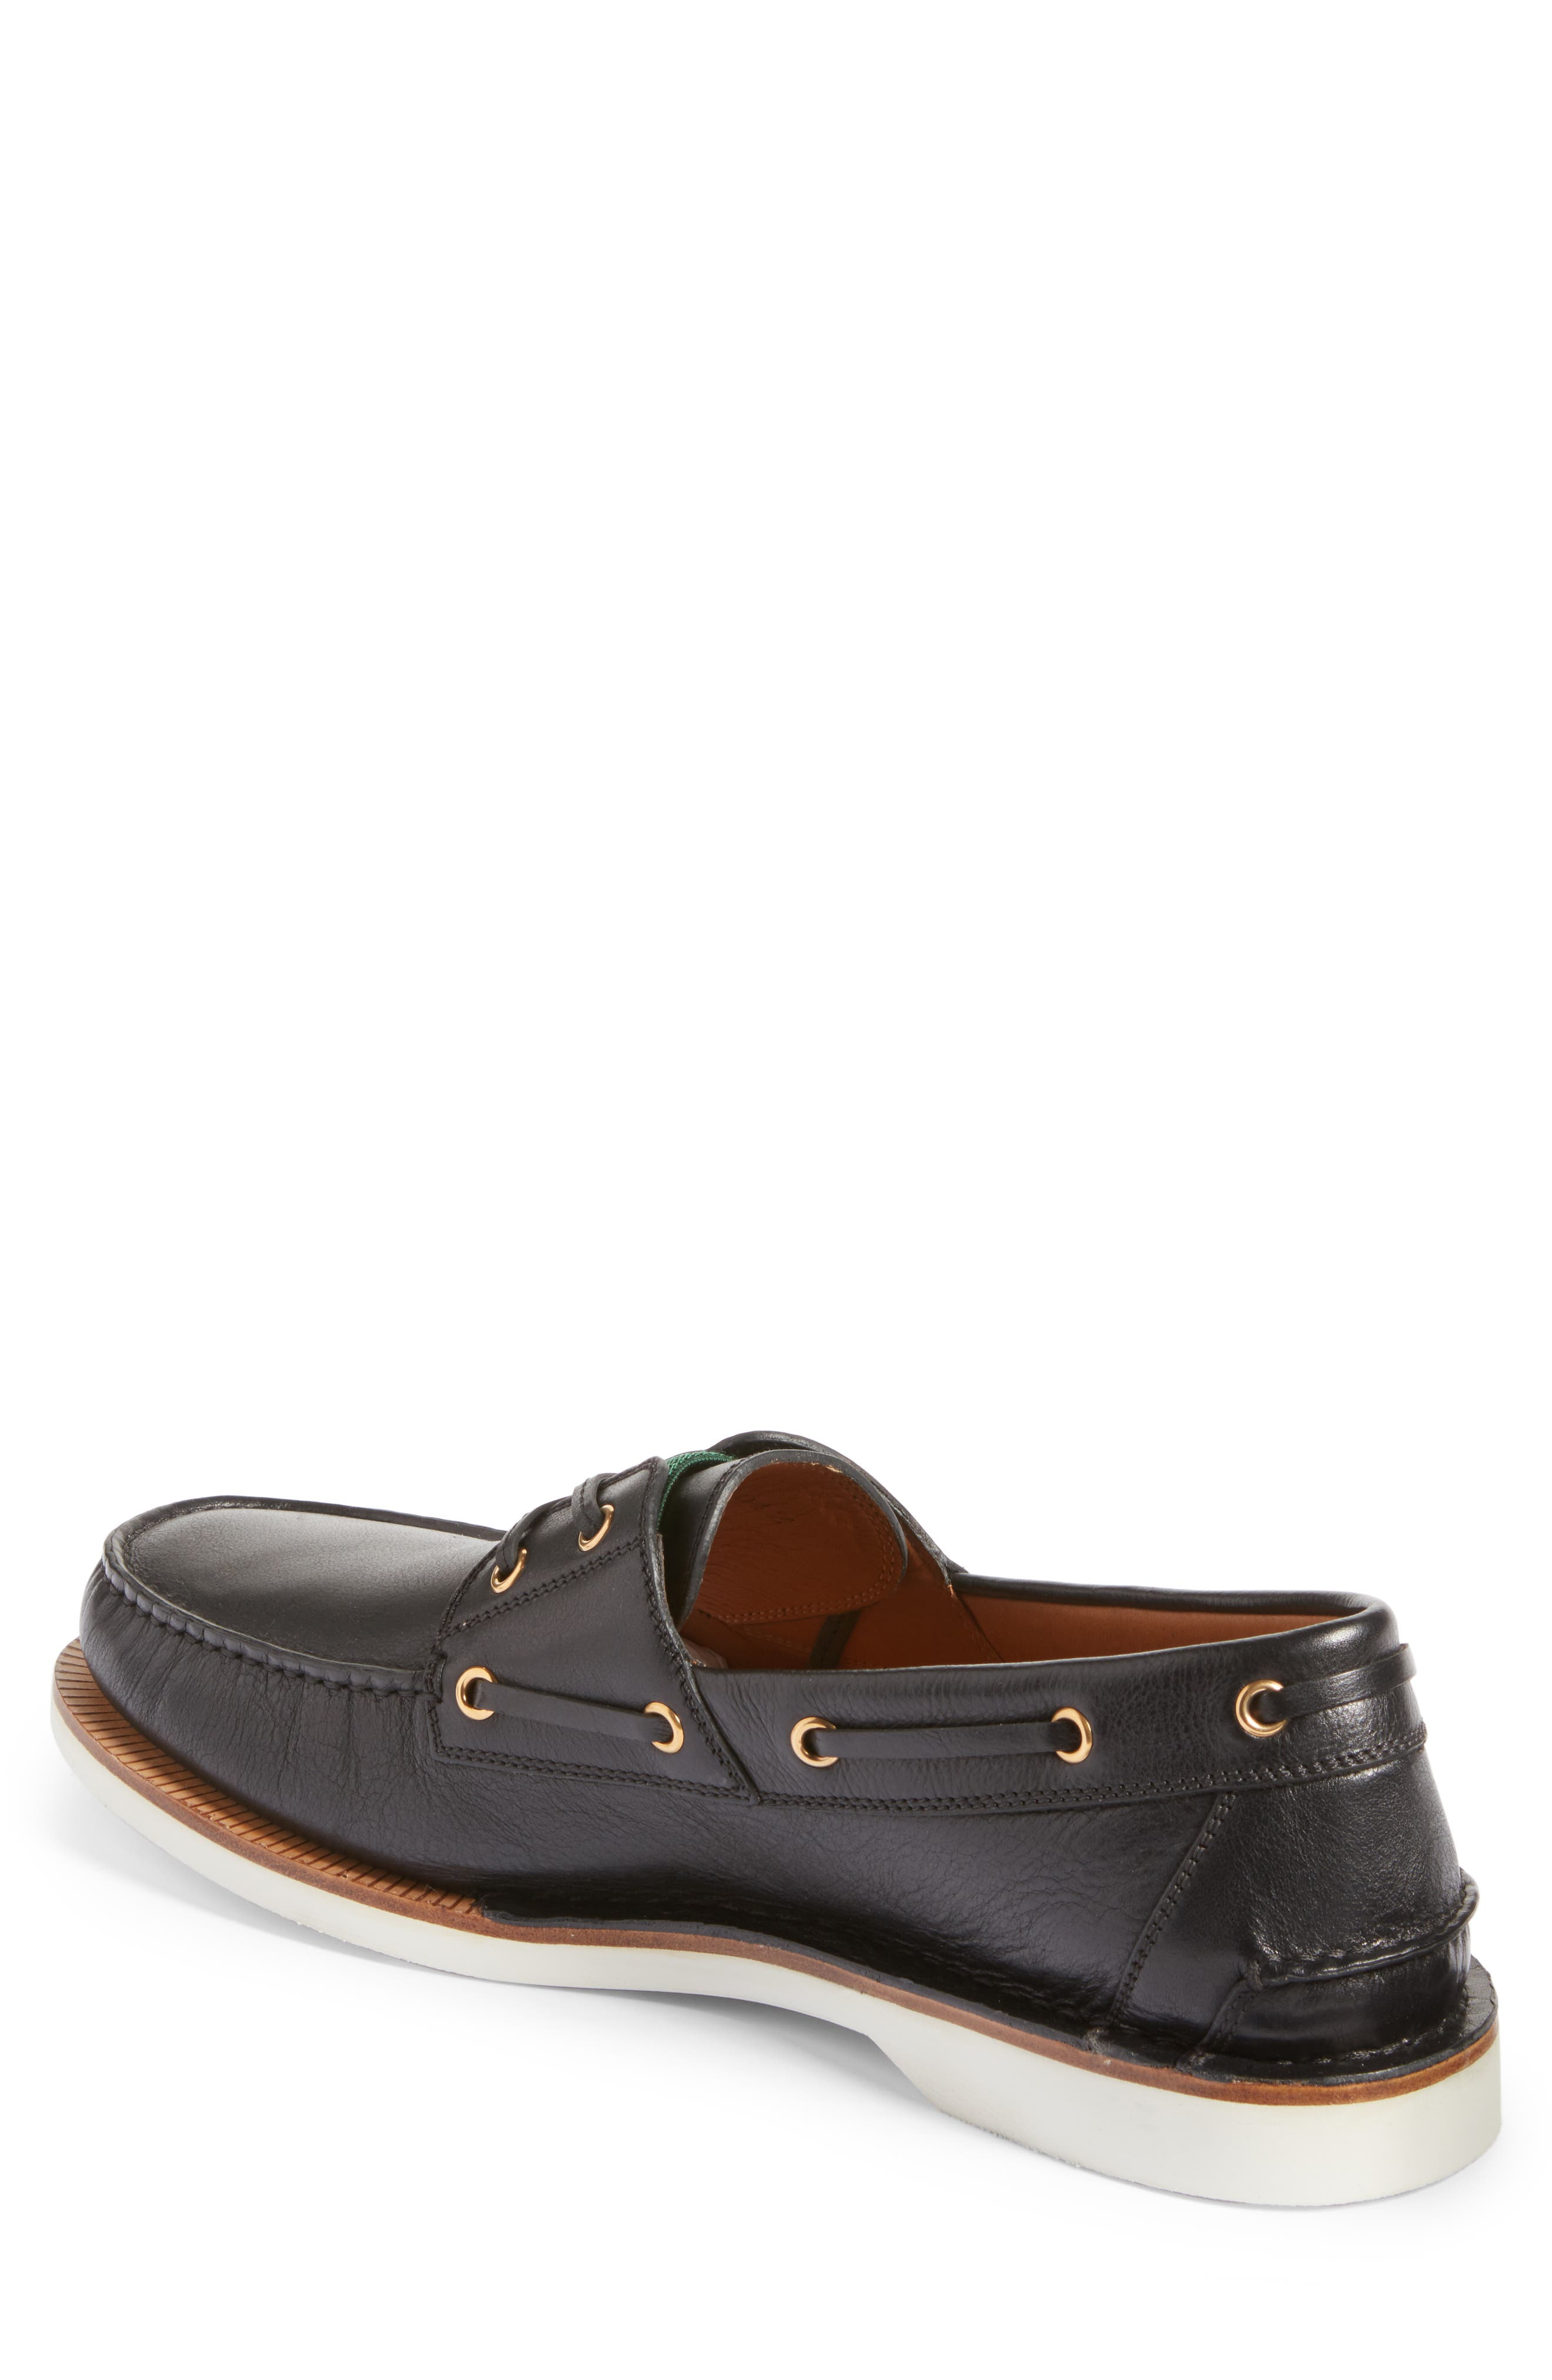 Delta Boat Loafer,                             Alternate thumbnail 2, color,                             009